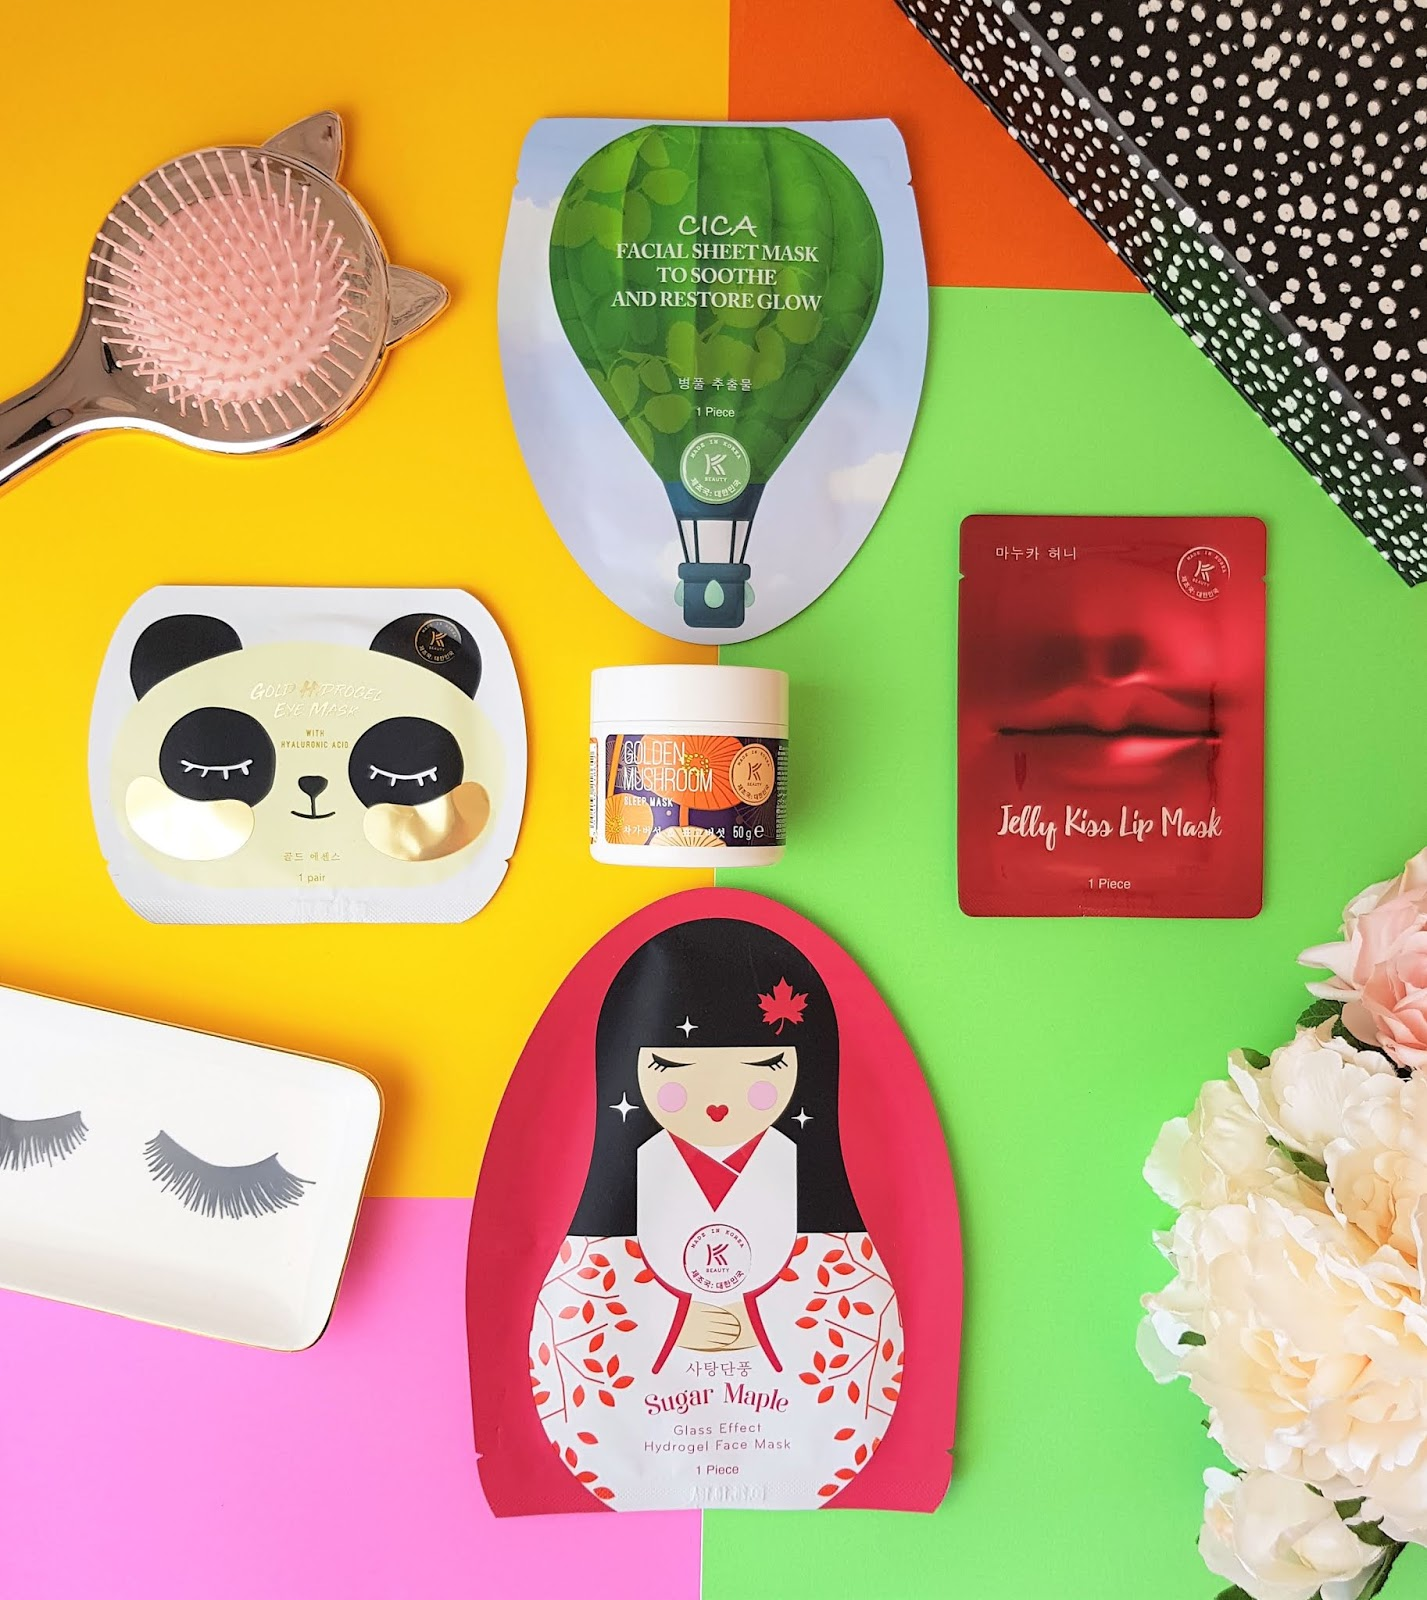 A flatlay of 5 new KBEAUTY masks by AVON